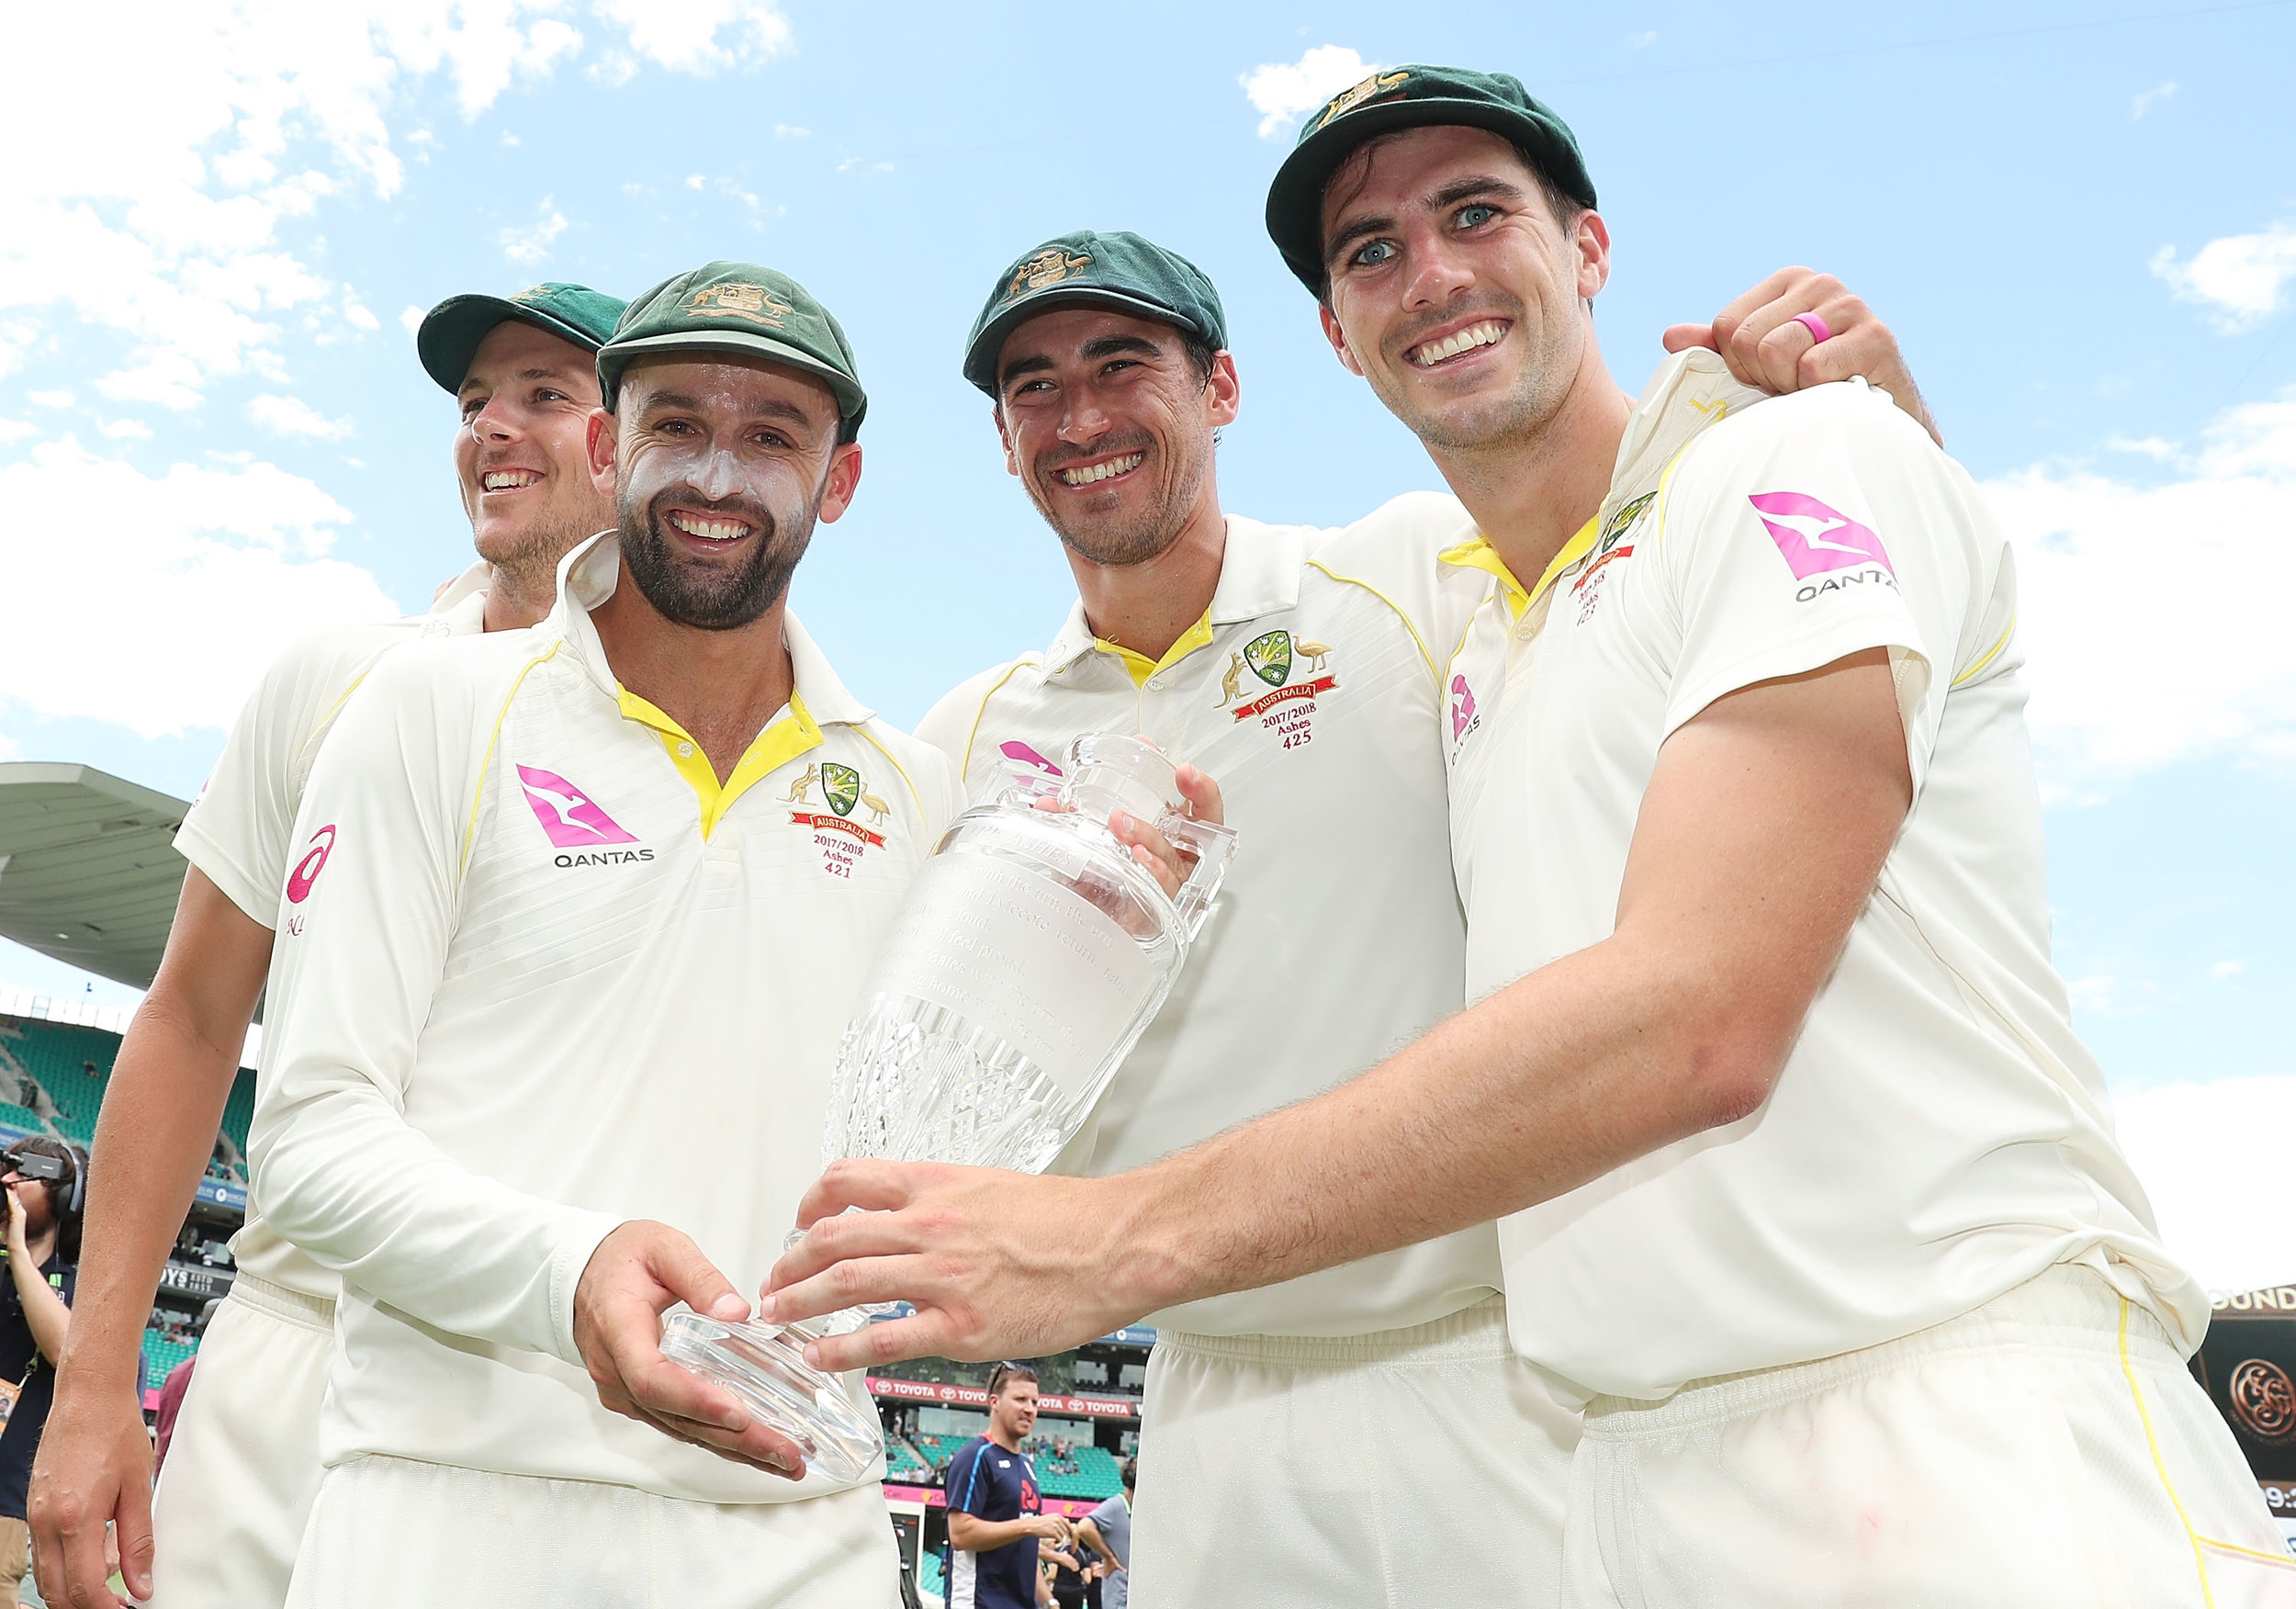 Nathan Lyon, Mitchell Starc, Pat Cummins and Josh Hazlewood pose with the Ashes trophy after winning the series during day five of the Fifth Test match in the 2017/18 Ashes Series